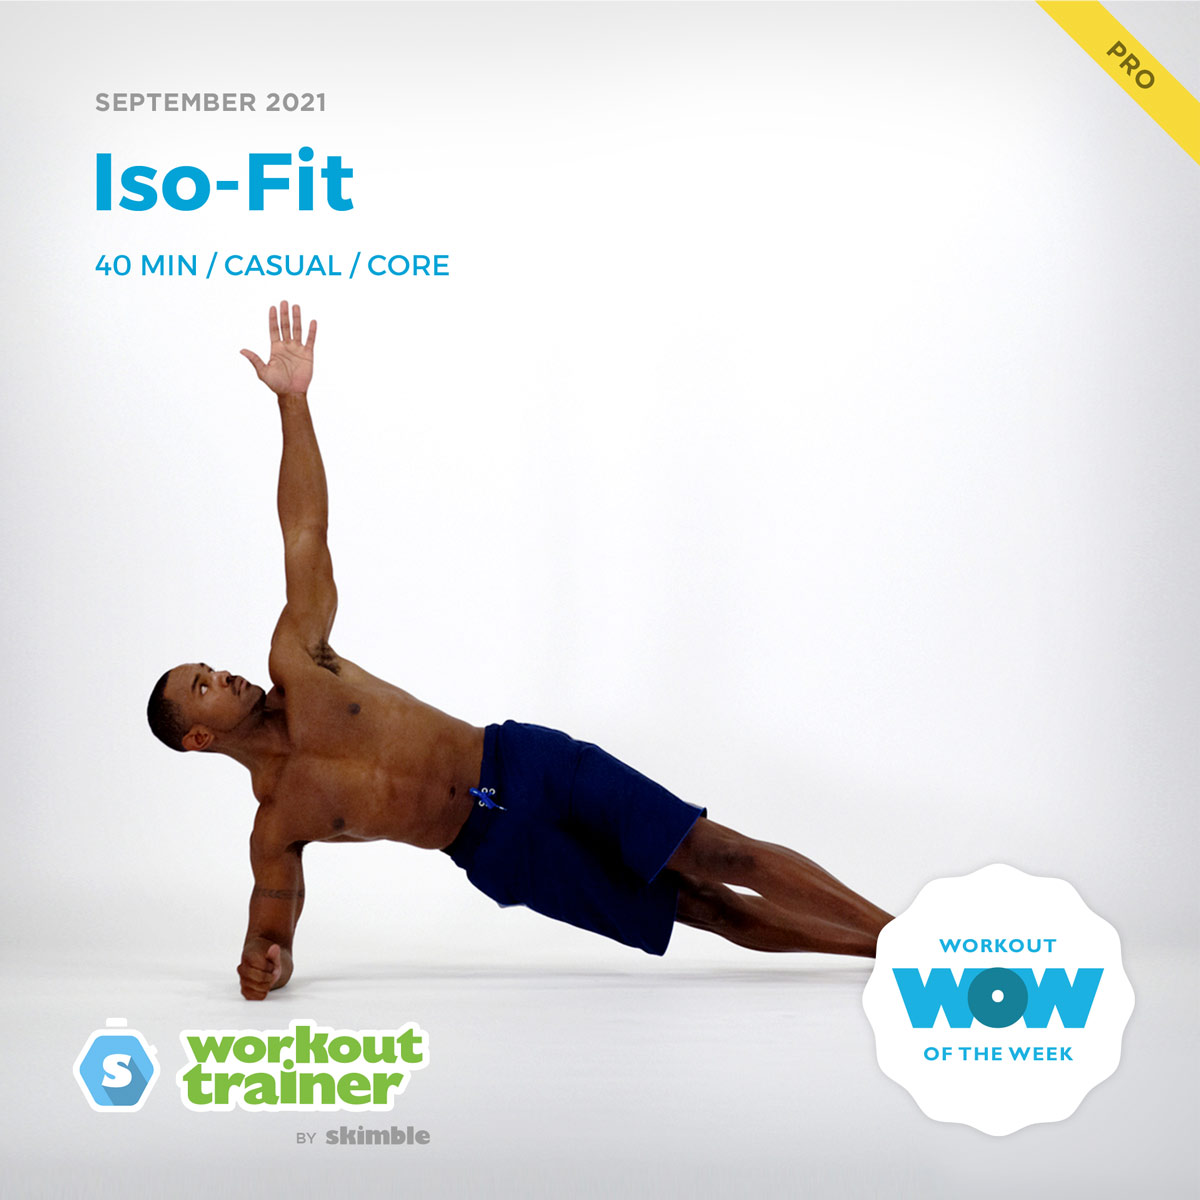 Male Personal Trainer holding a Right Half Side Plank to build core strength